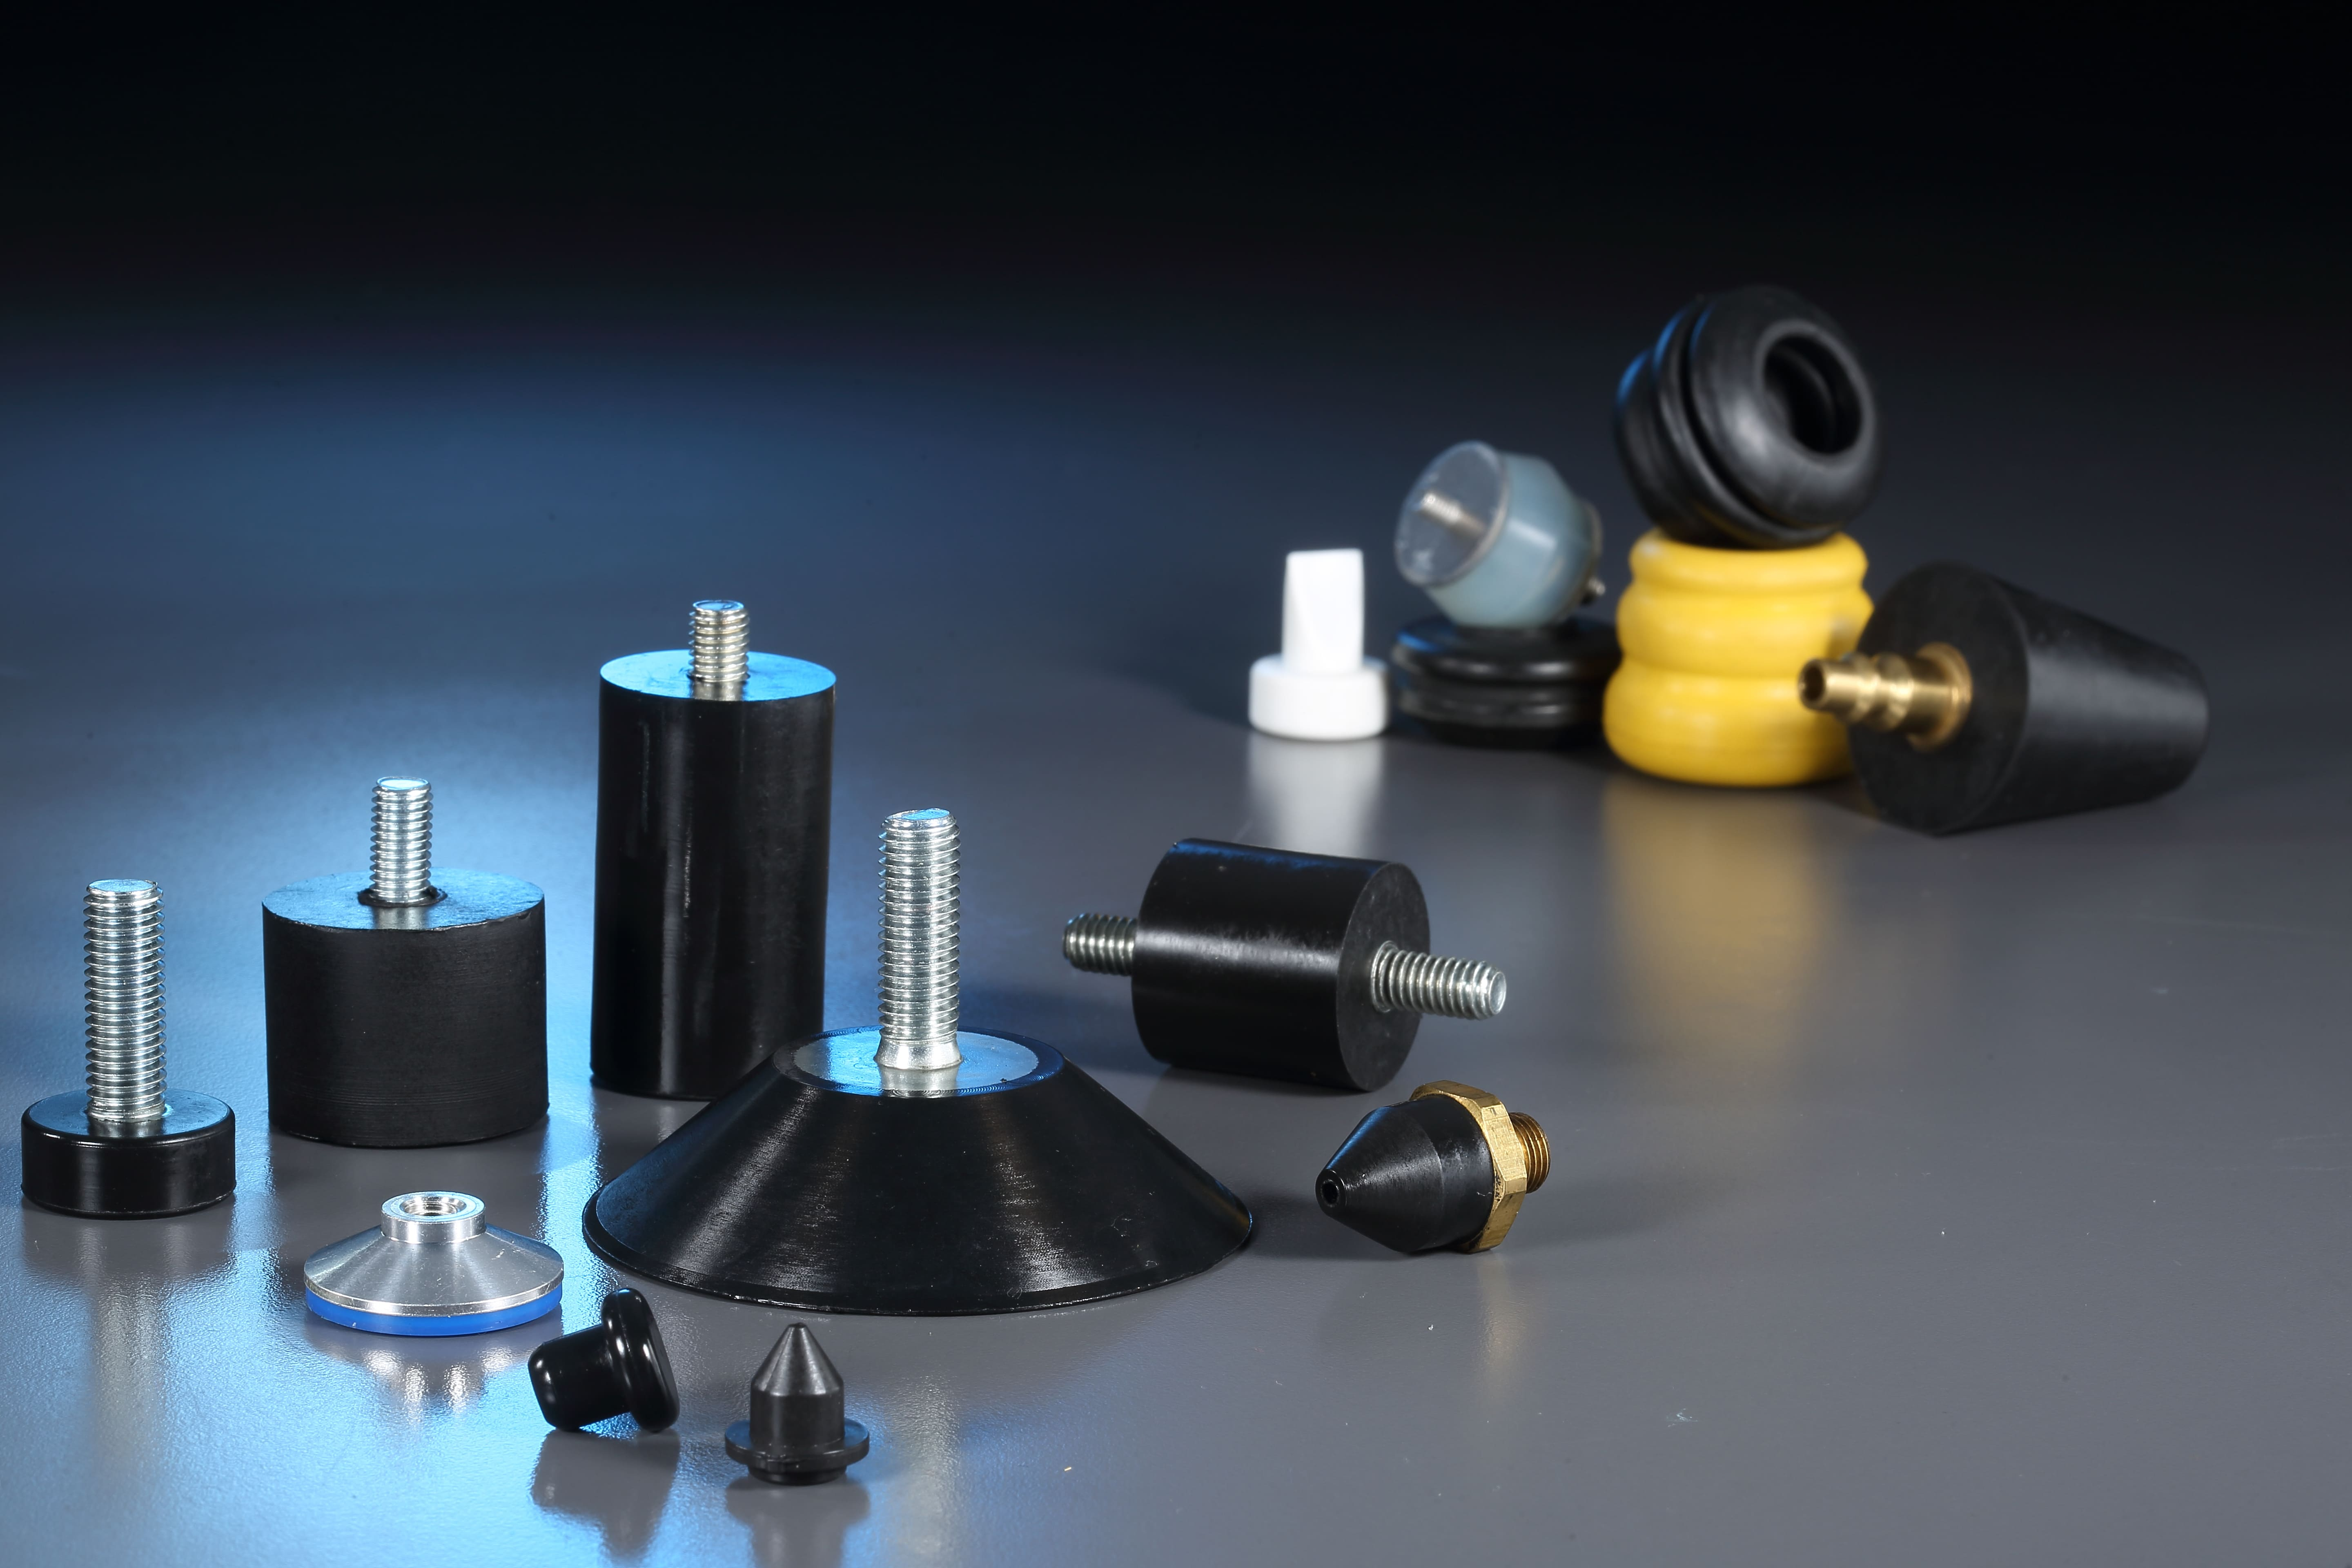 Bus Anti-Vibration rubber,spigot,nozzle for Rubber, Plastic Parts made by Yee Ming Ying Co., LTD. 昱銘穎有限公司 - MatchSupplier.com